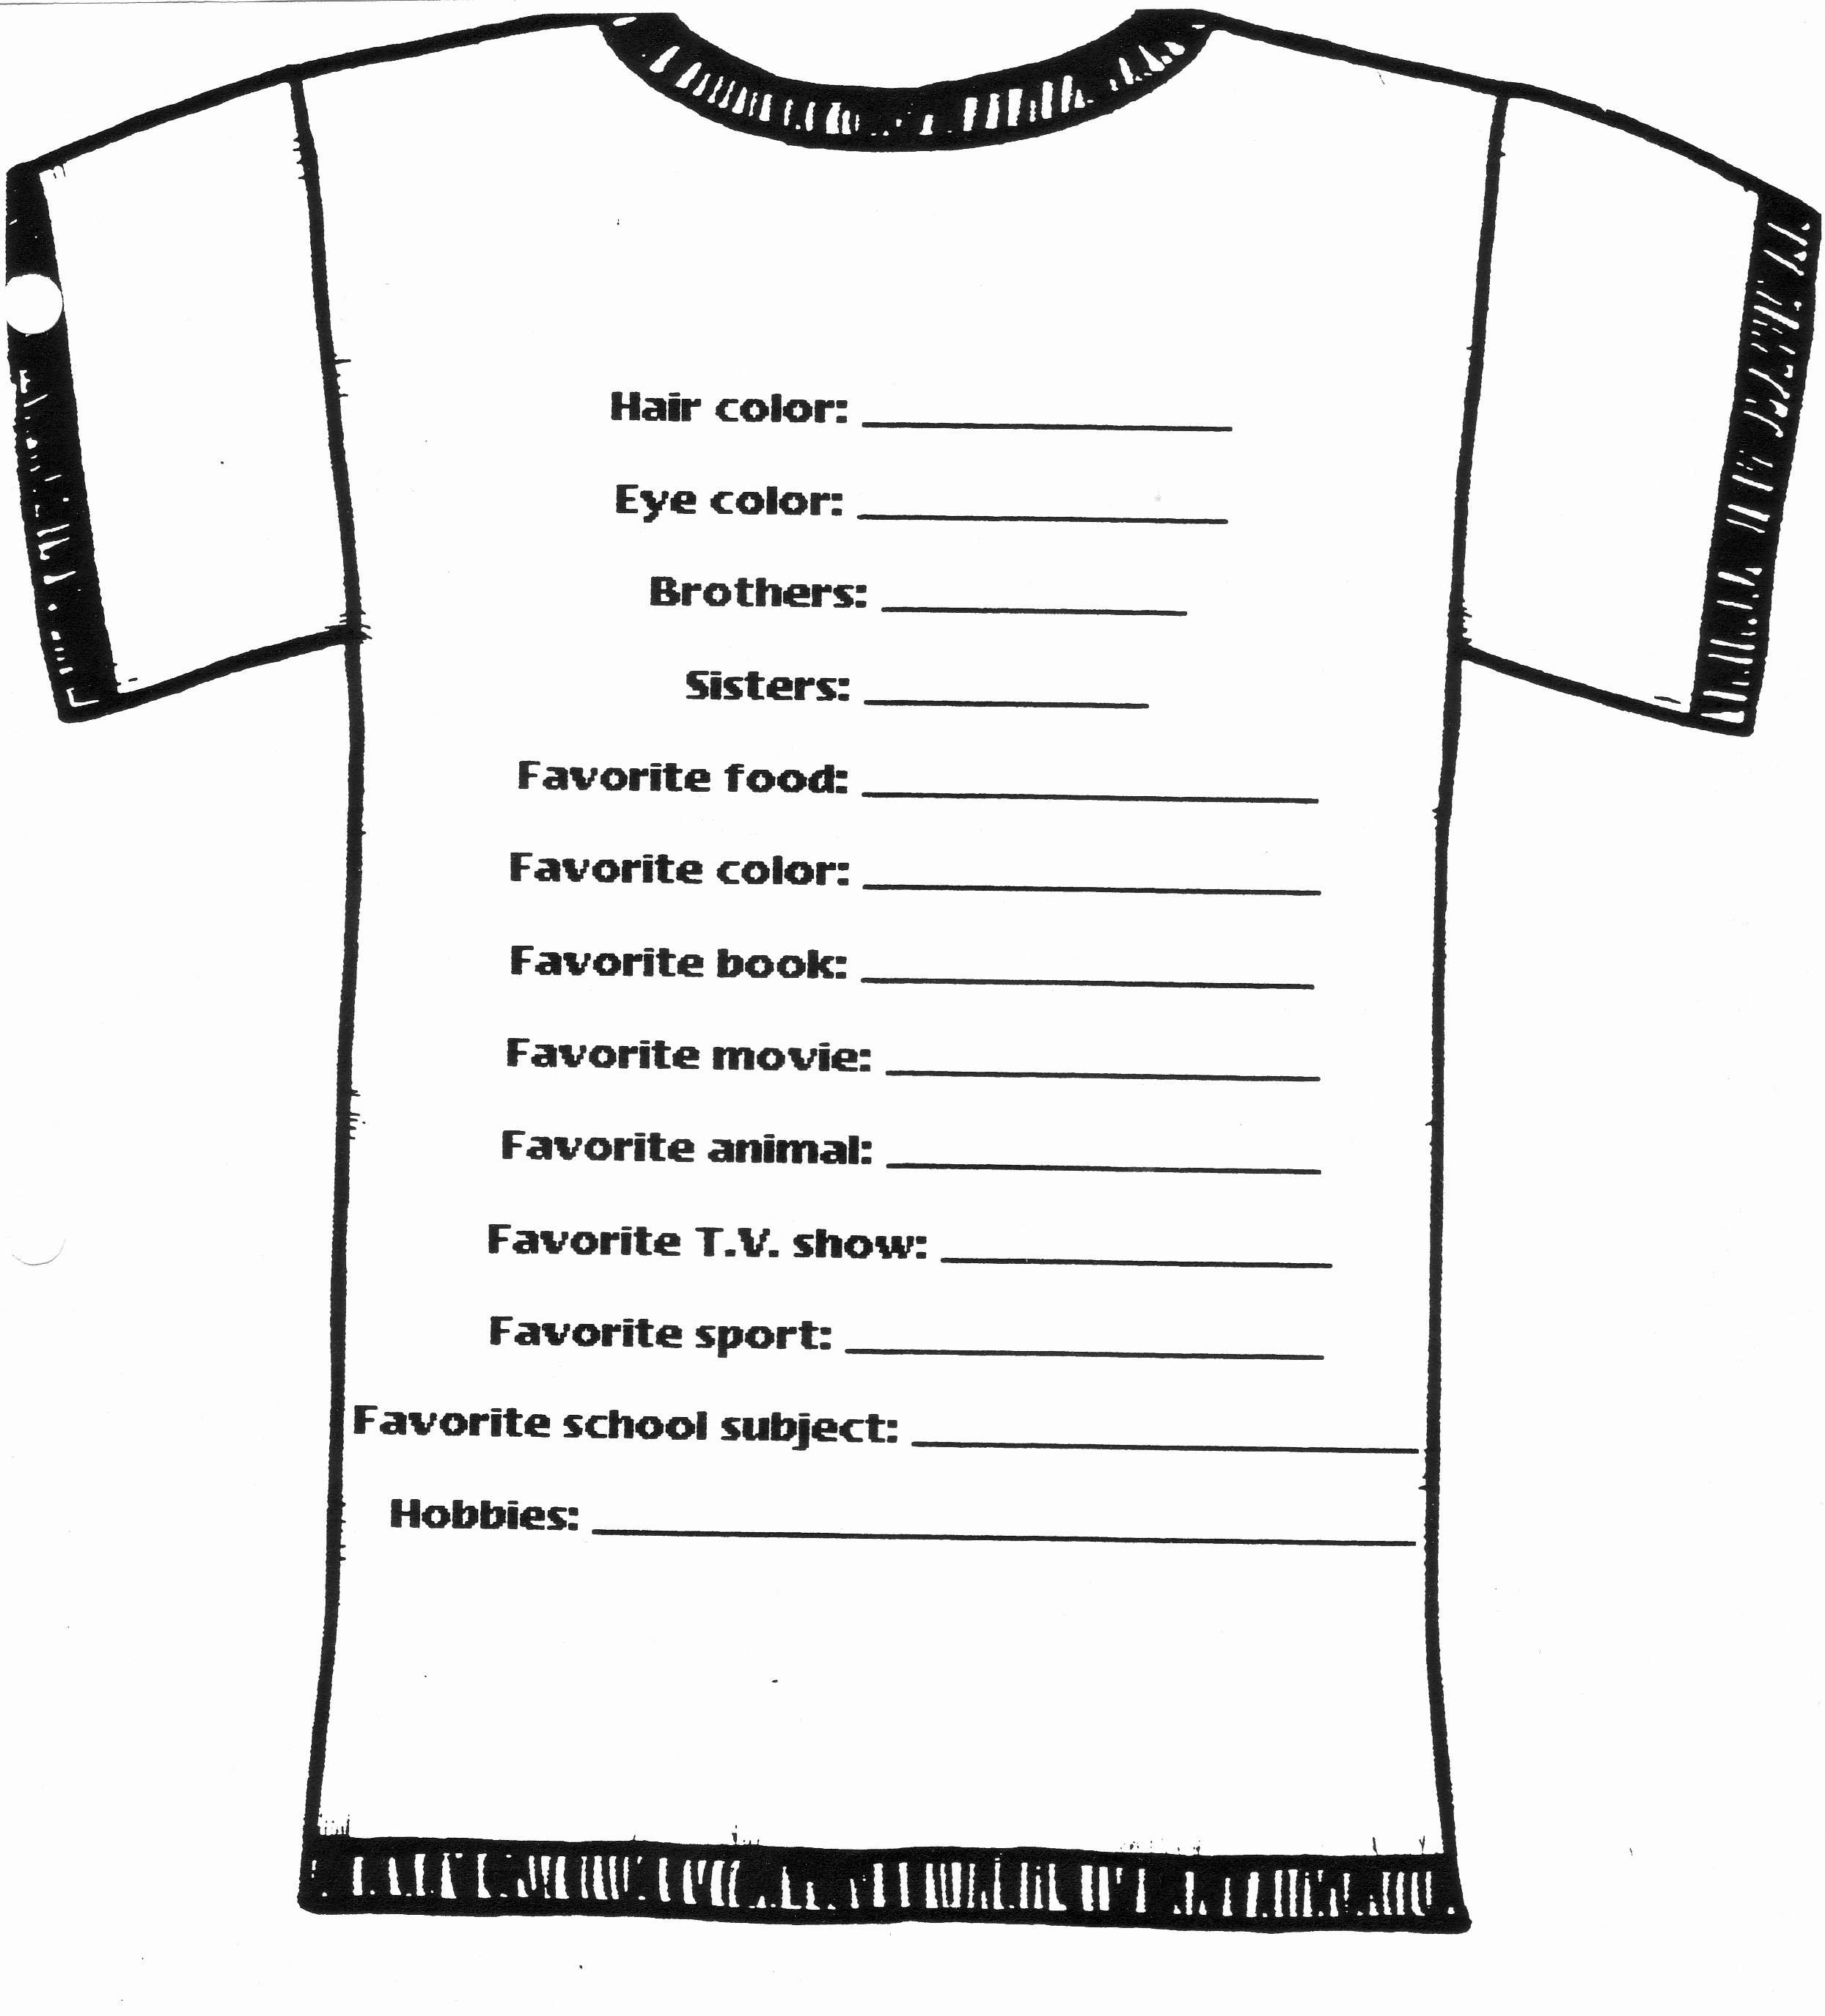 T Shirt order Template Lovely T Shirt order form Template